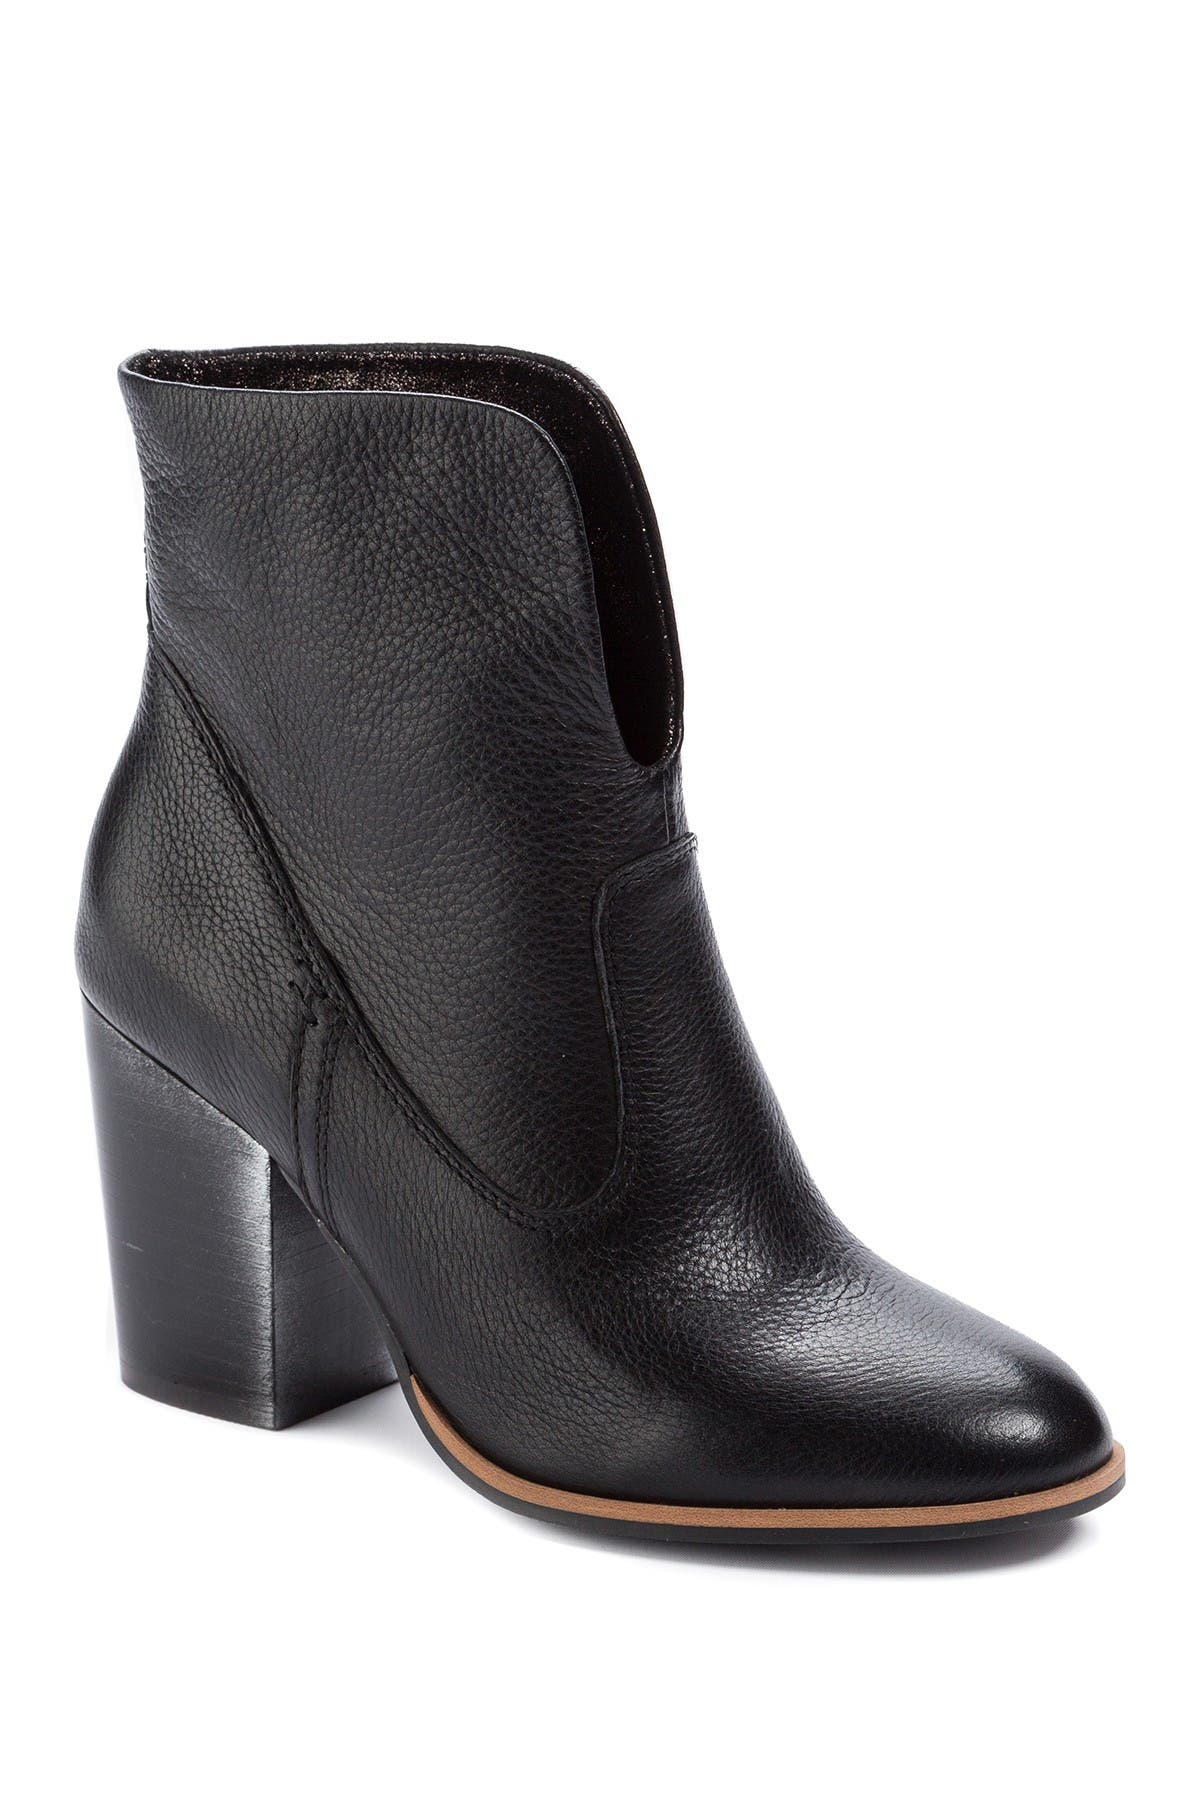 Image of LUCCA LANE Kat Ankle Bootie